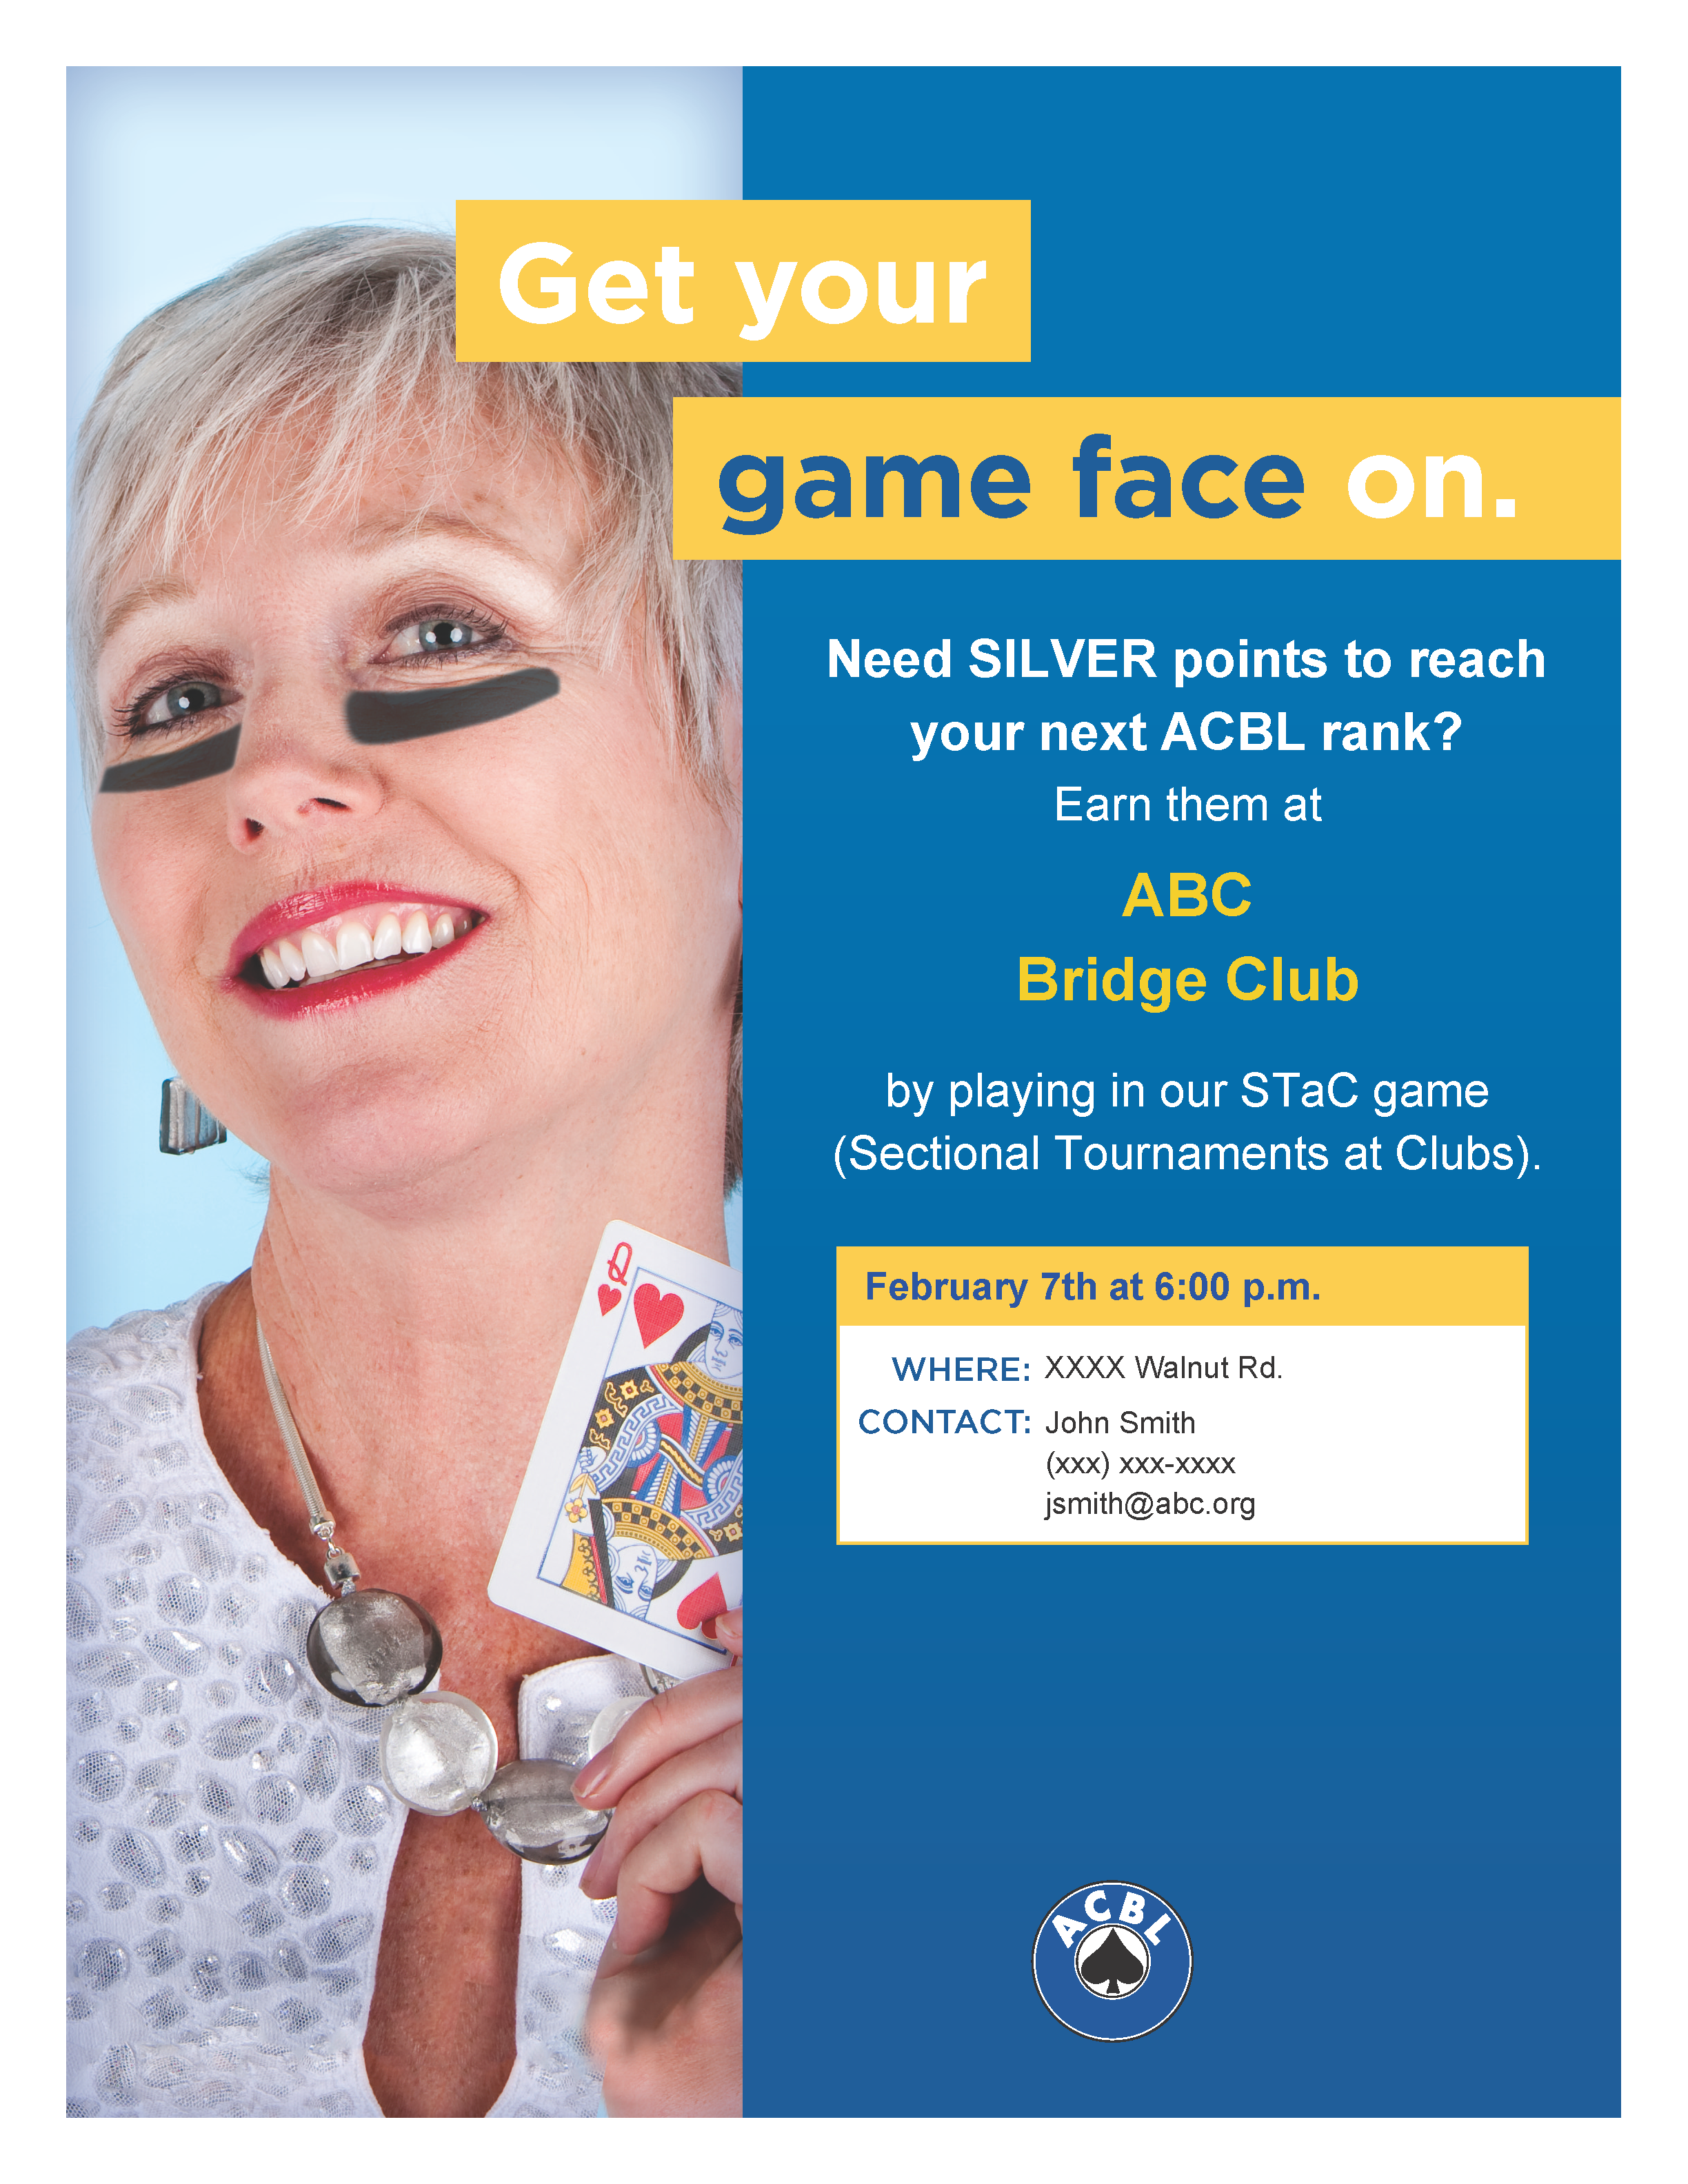 Use your Game Face to promote bridge